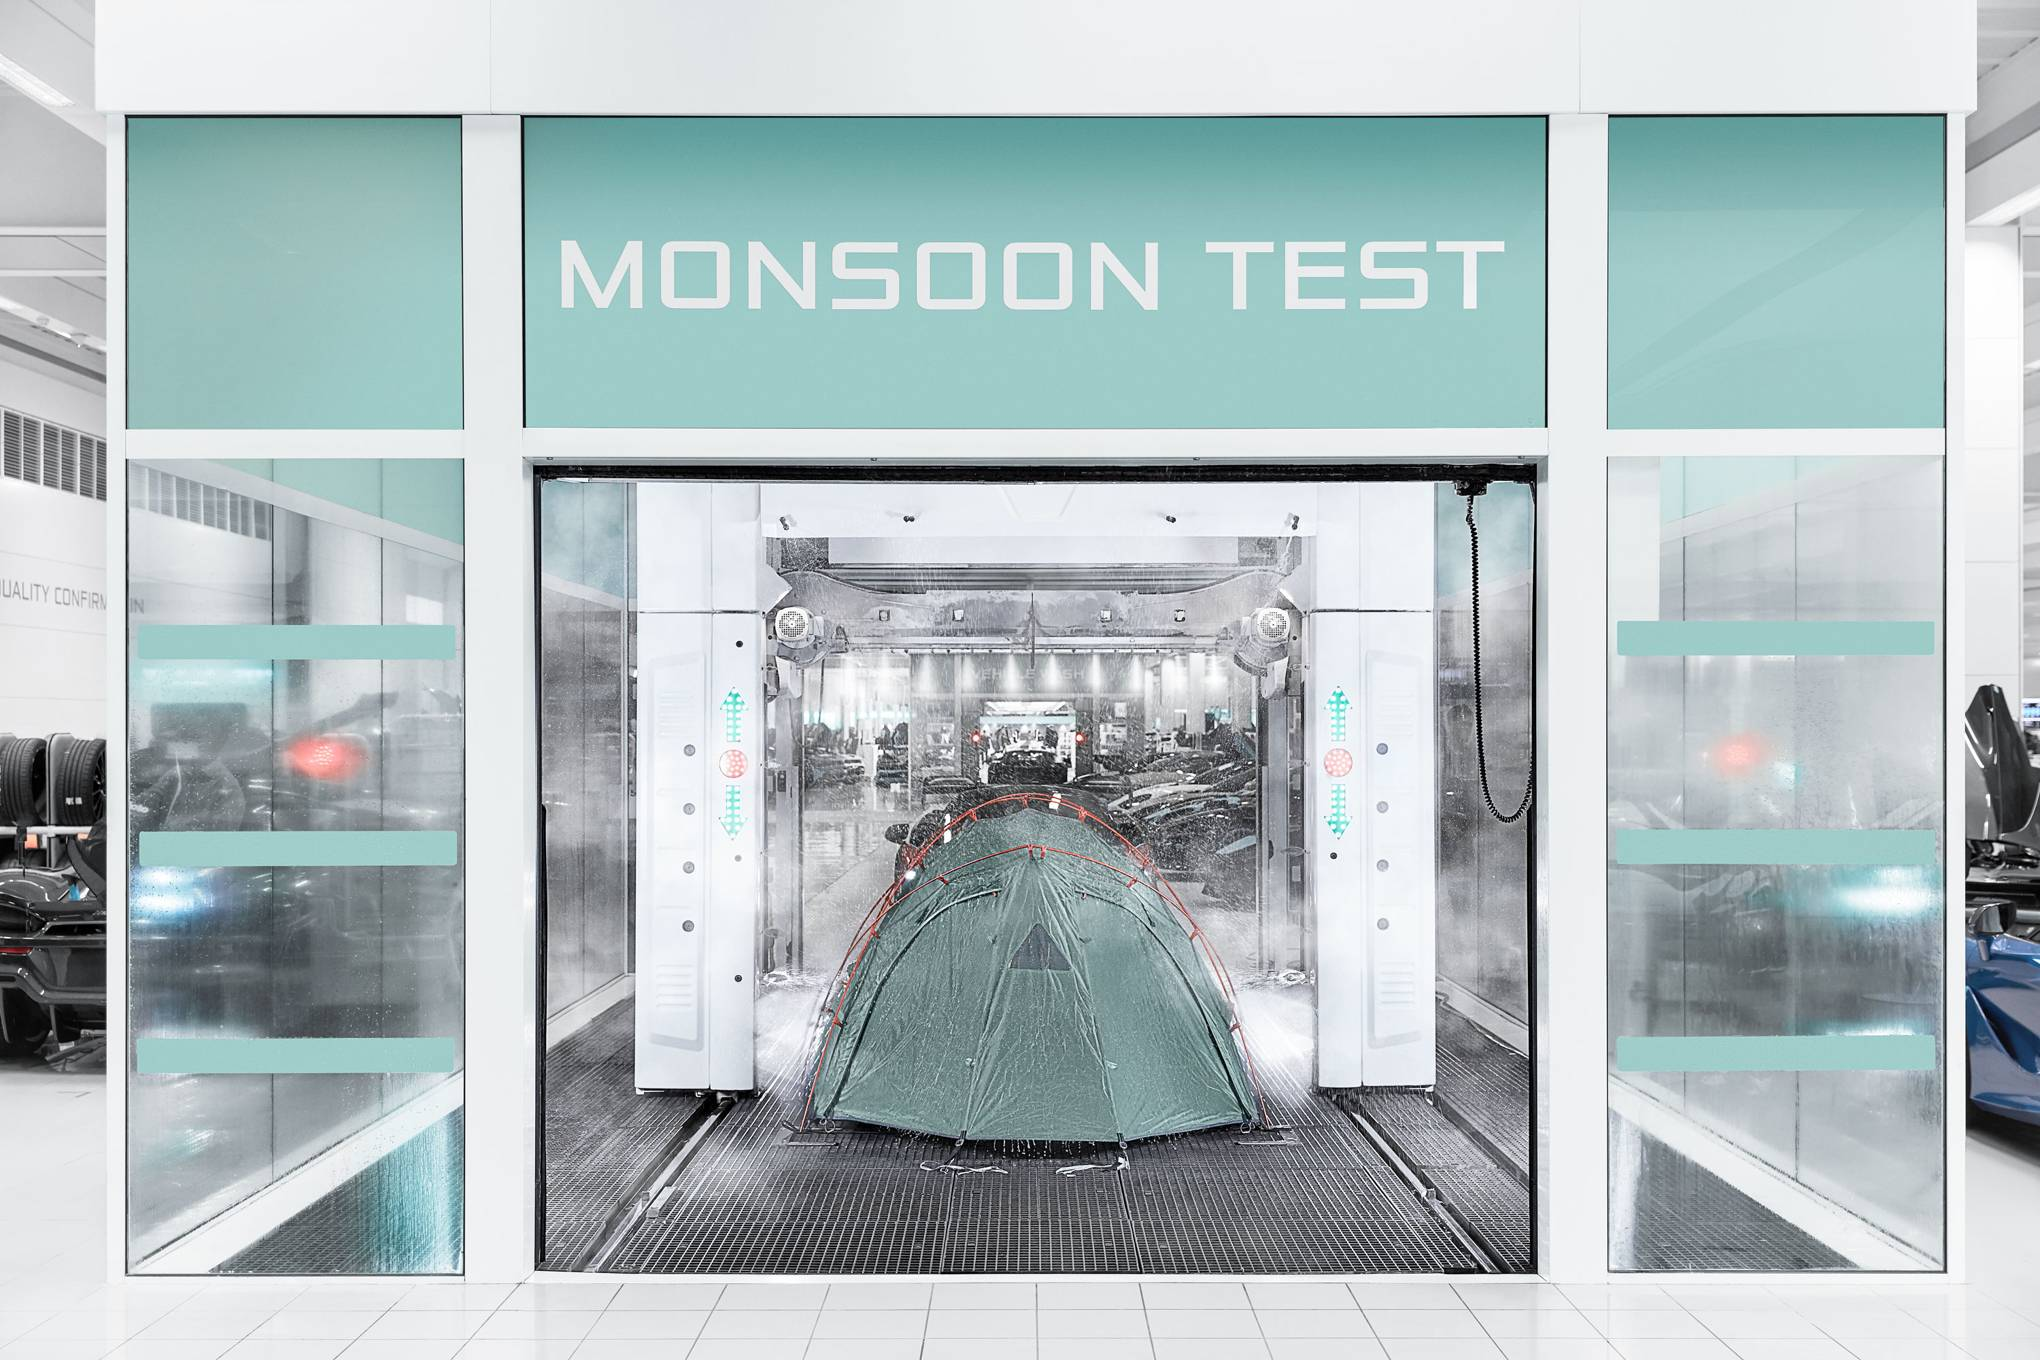 We test the best festival tents in McLaren's monsoon chamber